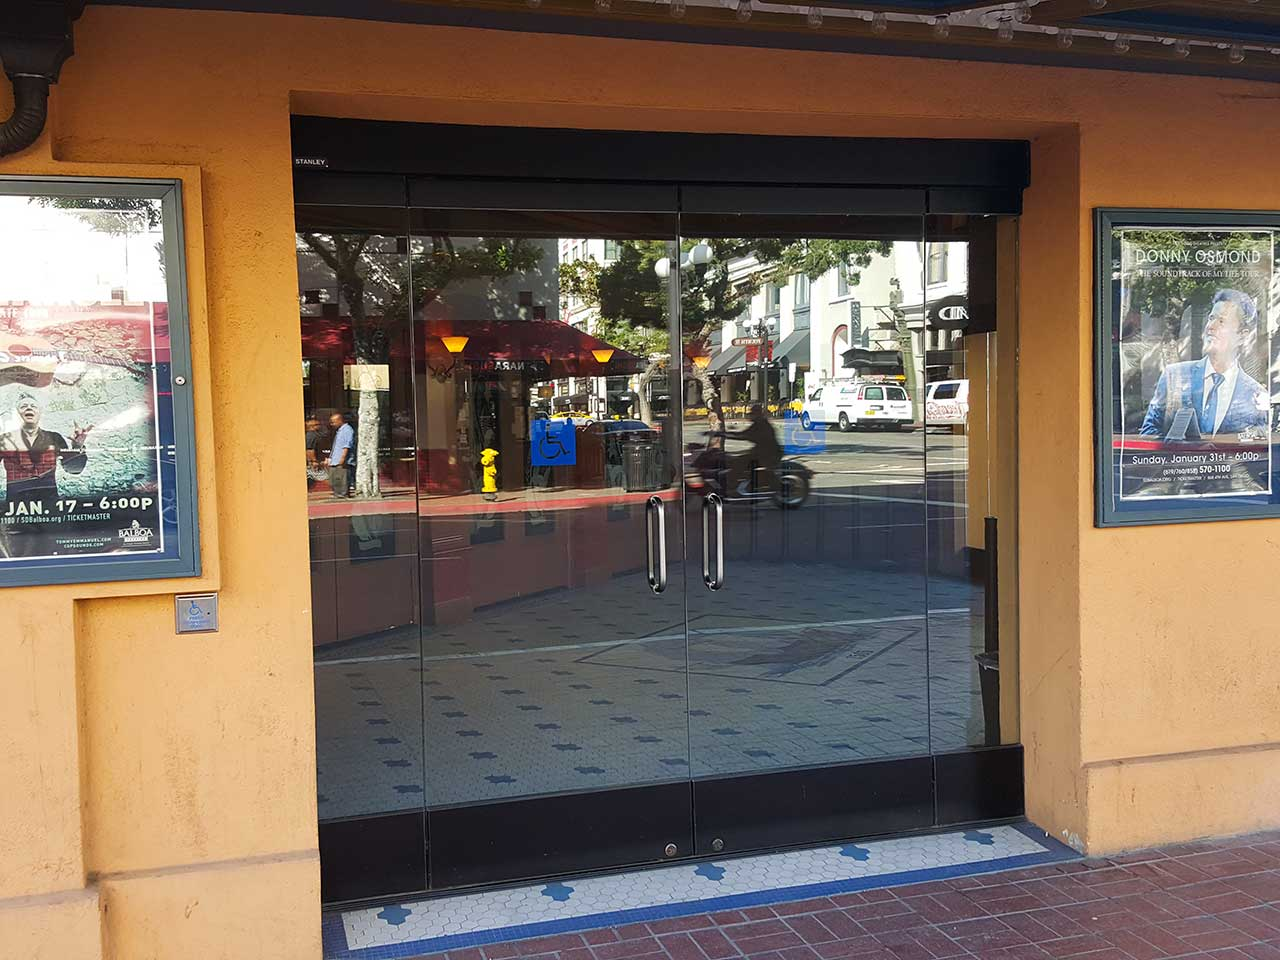 Balboa Theatre's all glass entrance from the outside